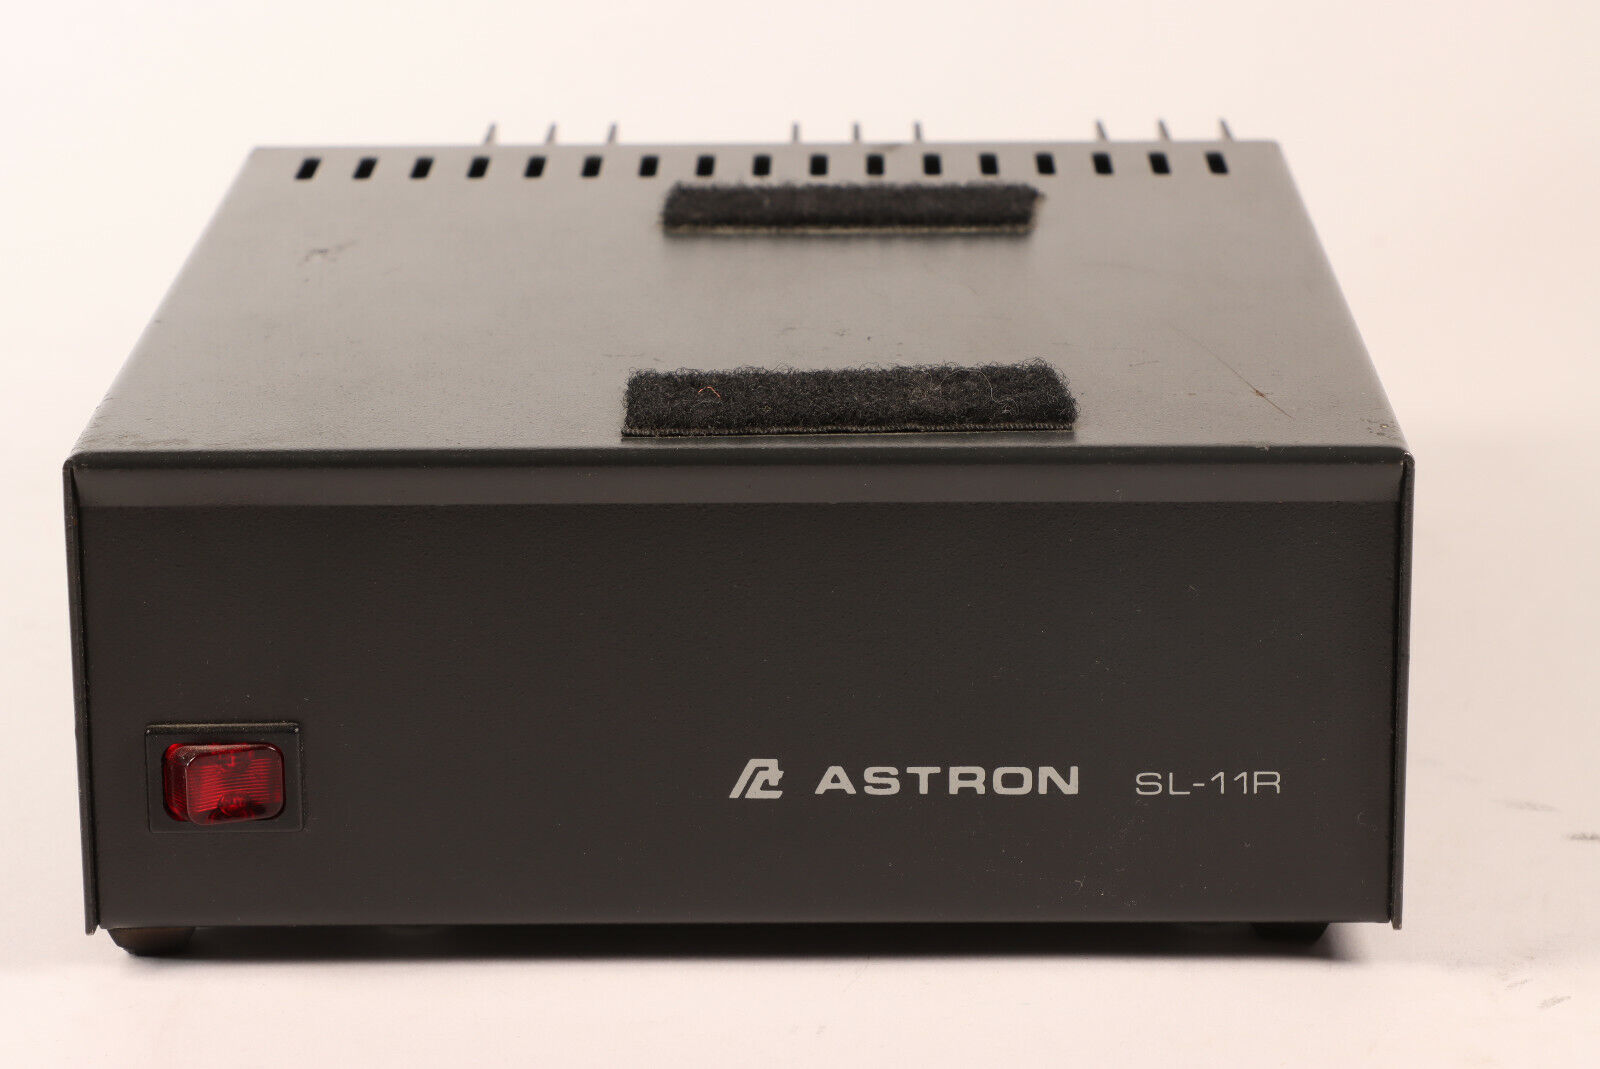 Astron SL-11R Regulated Power Supply 13.8V used. Buy it now for 30.00